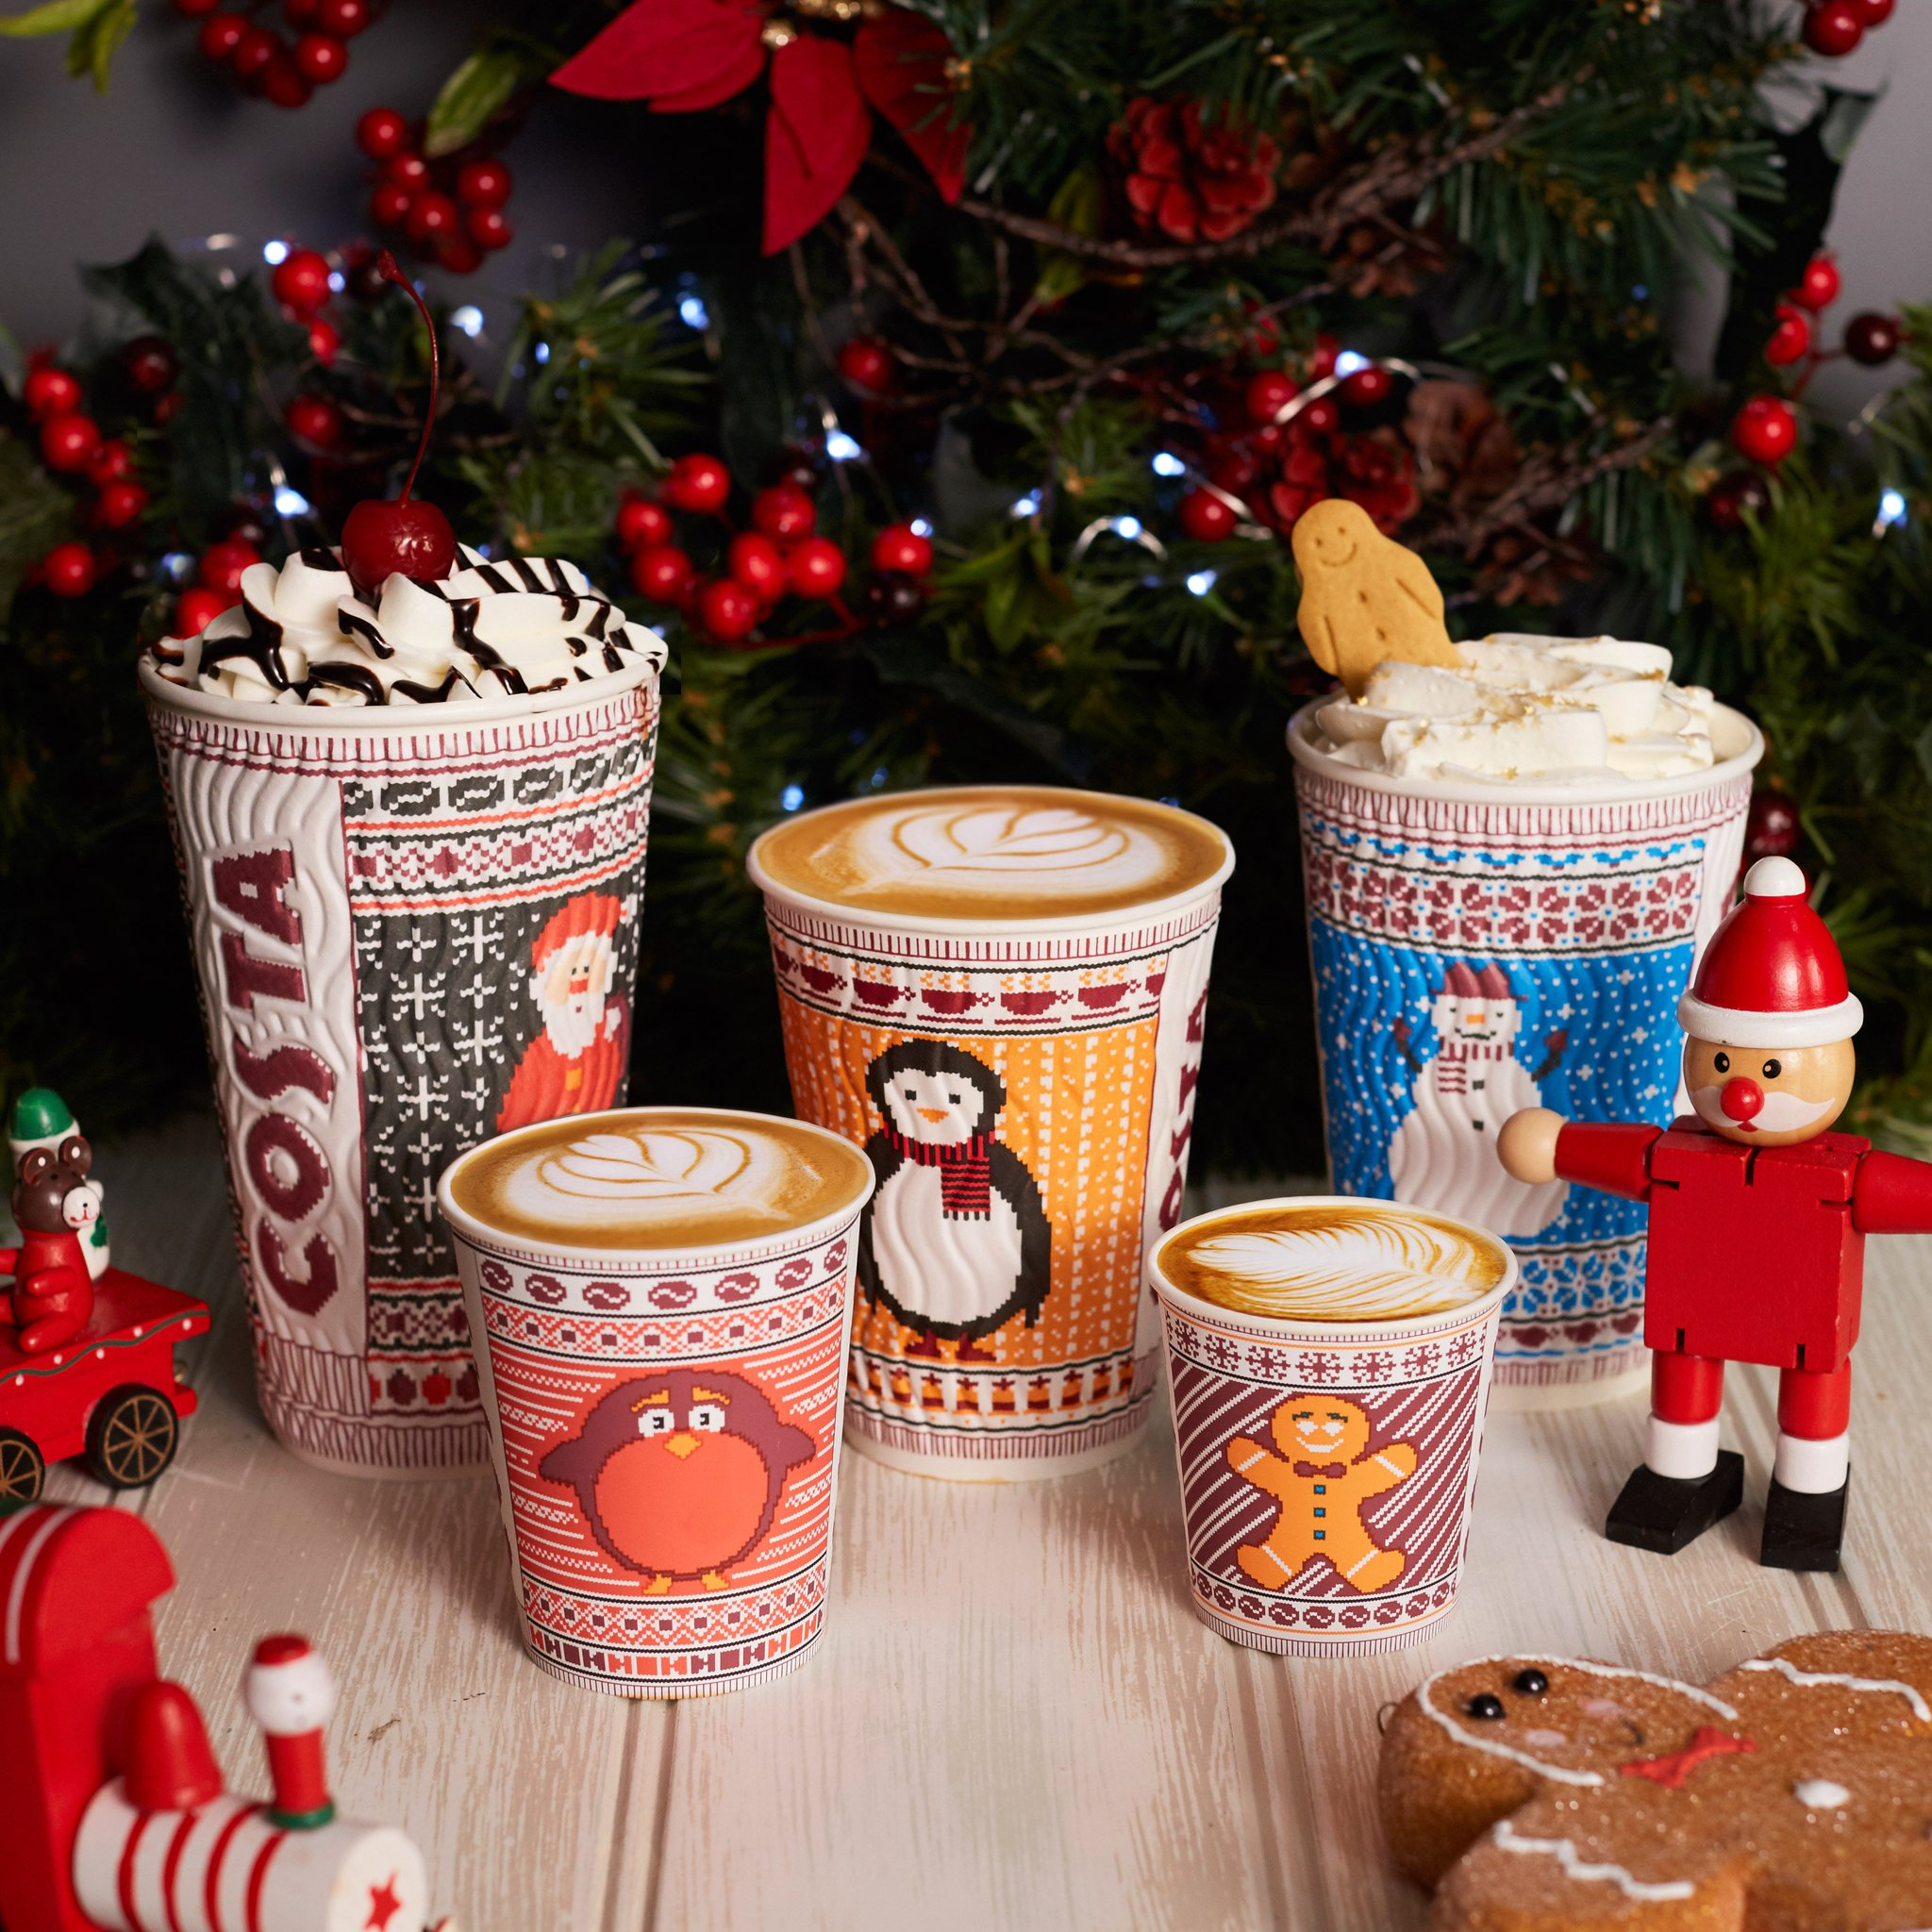 Costa Coffee On Twitter Our Super Cute Christmas Cups Are